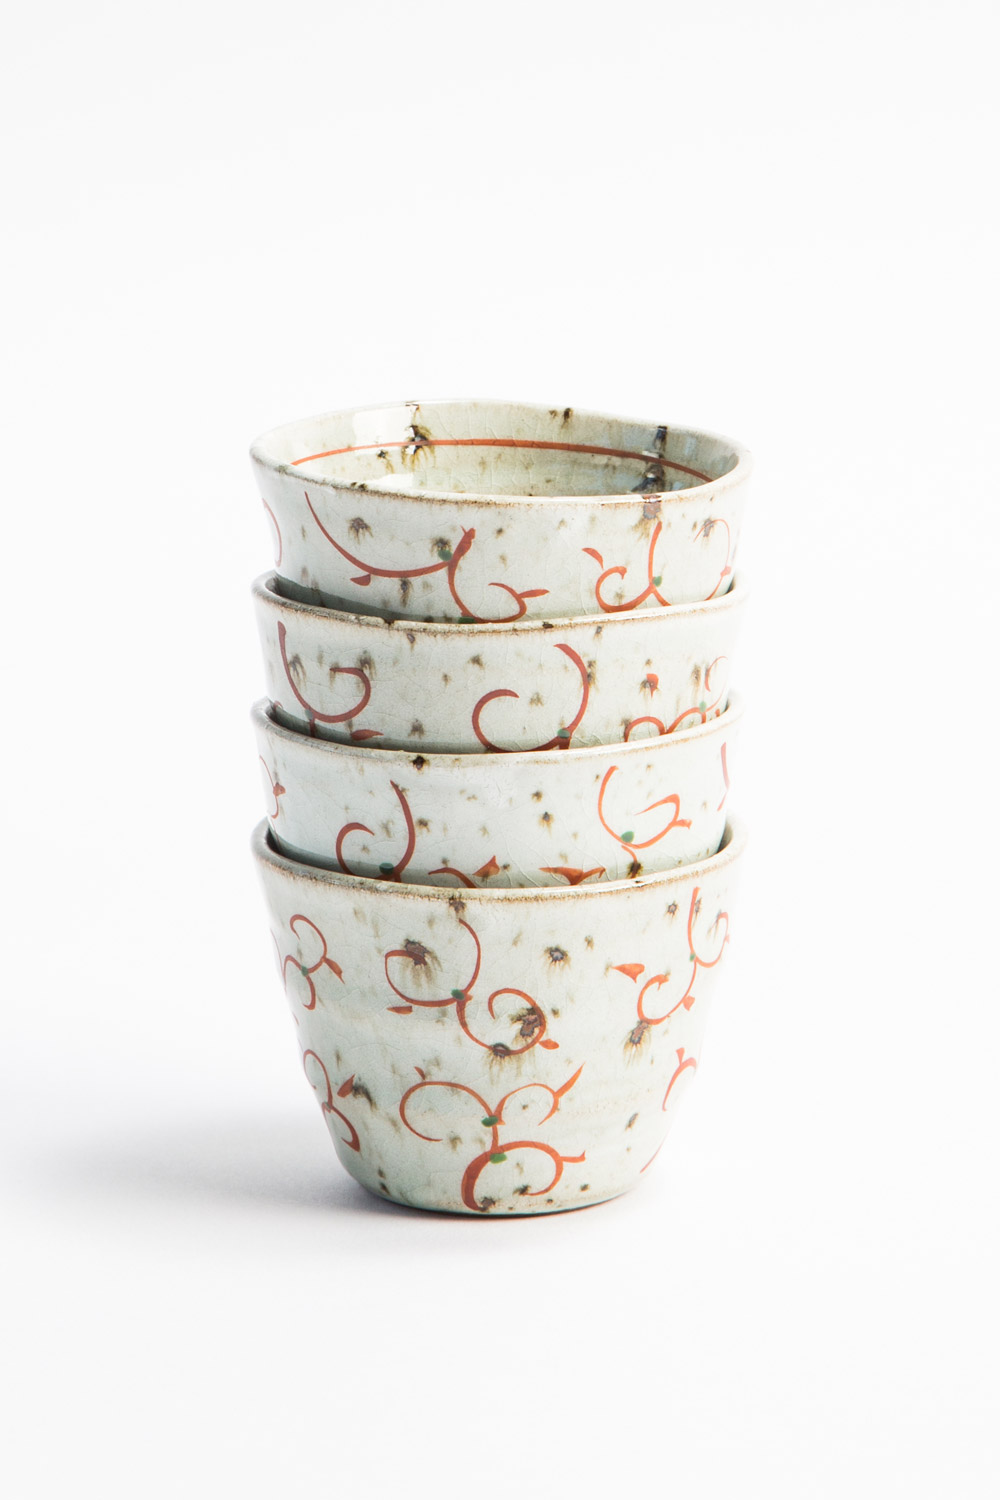 These Hand Glazed Japanese Stoneware Tea Cups have a red hand-painted motif for a touch of decorative whimsy. $22 each